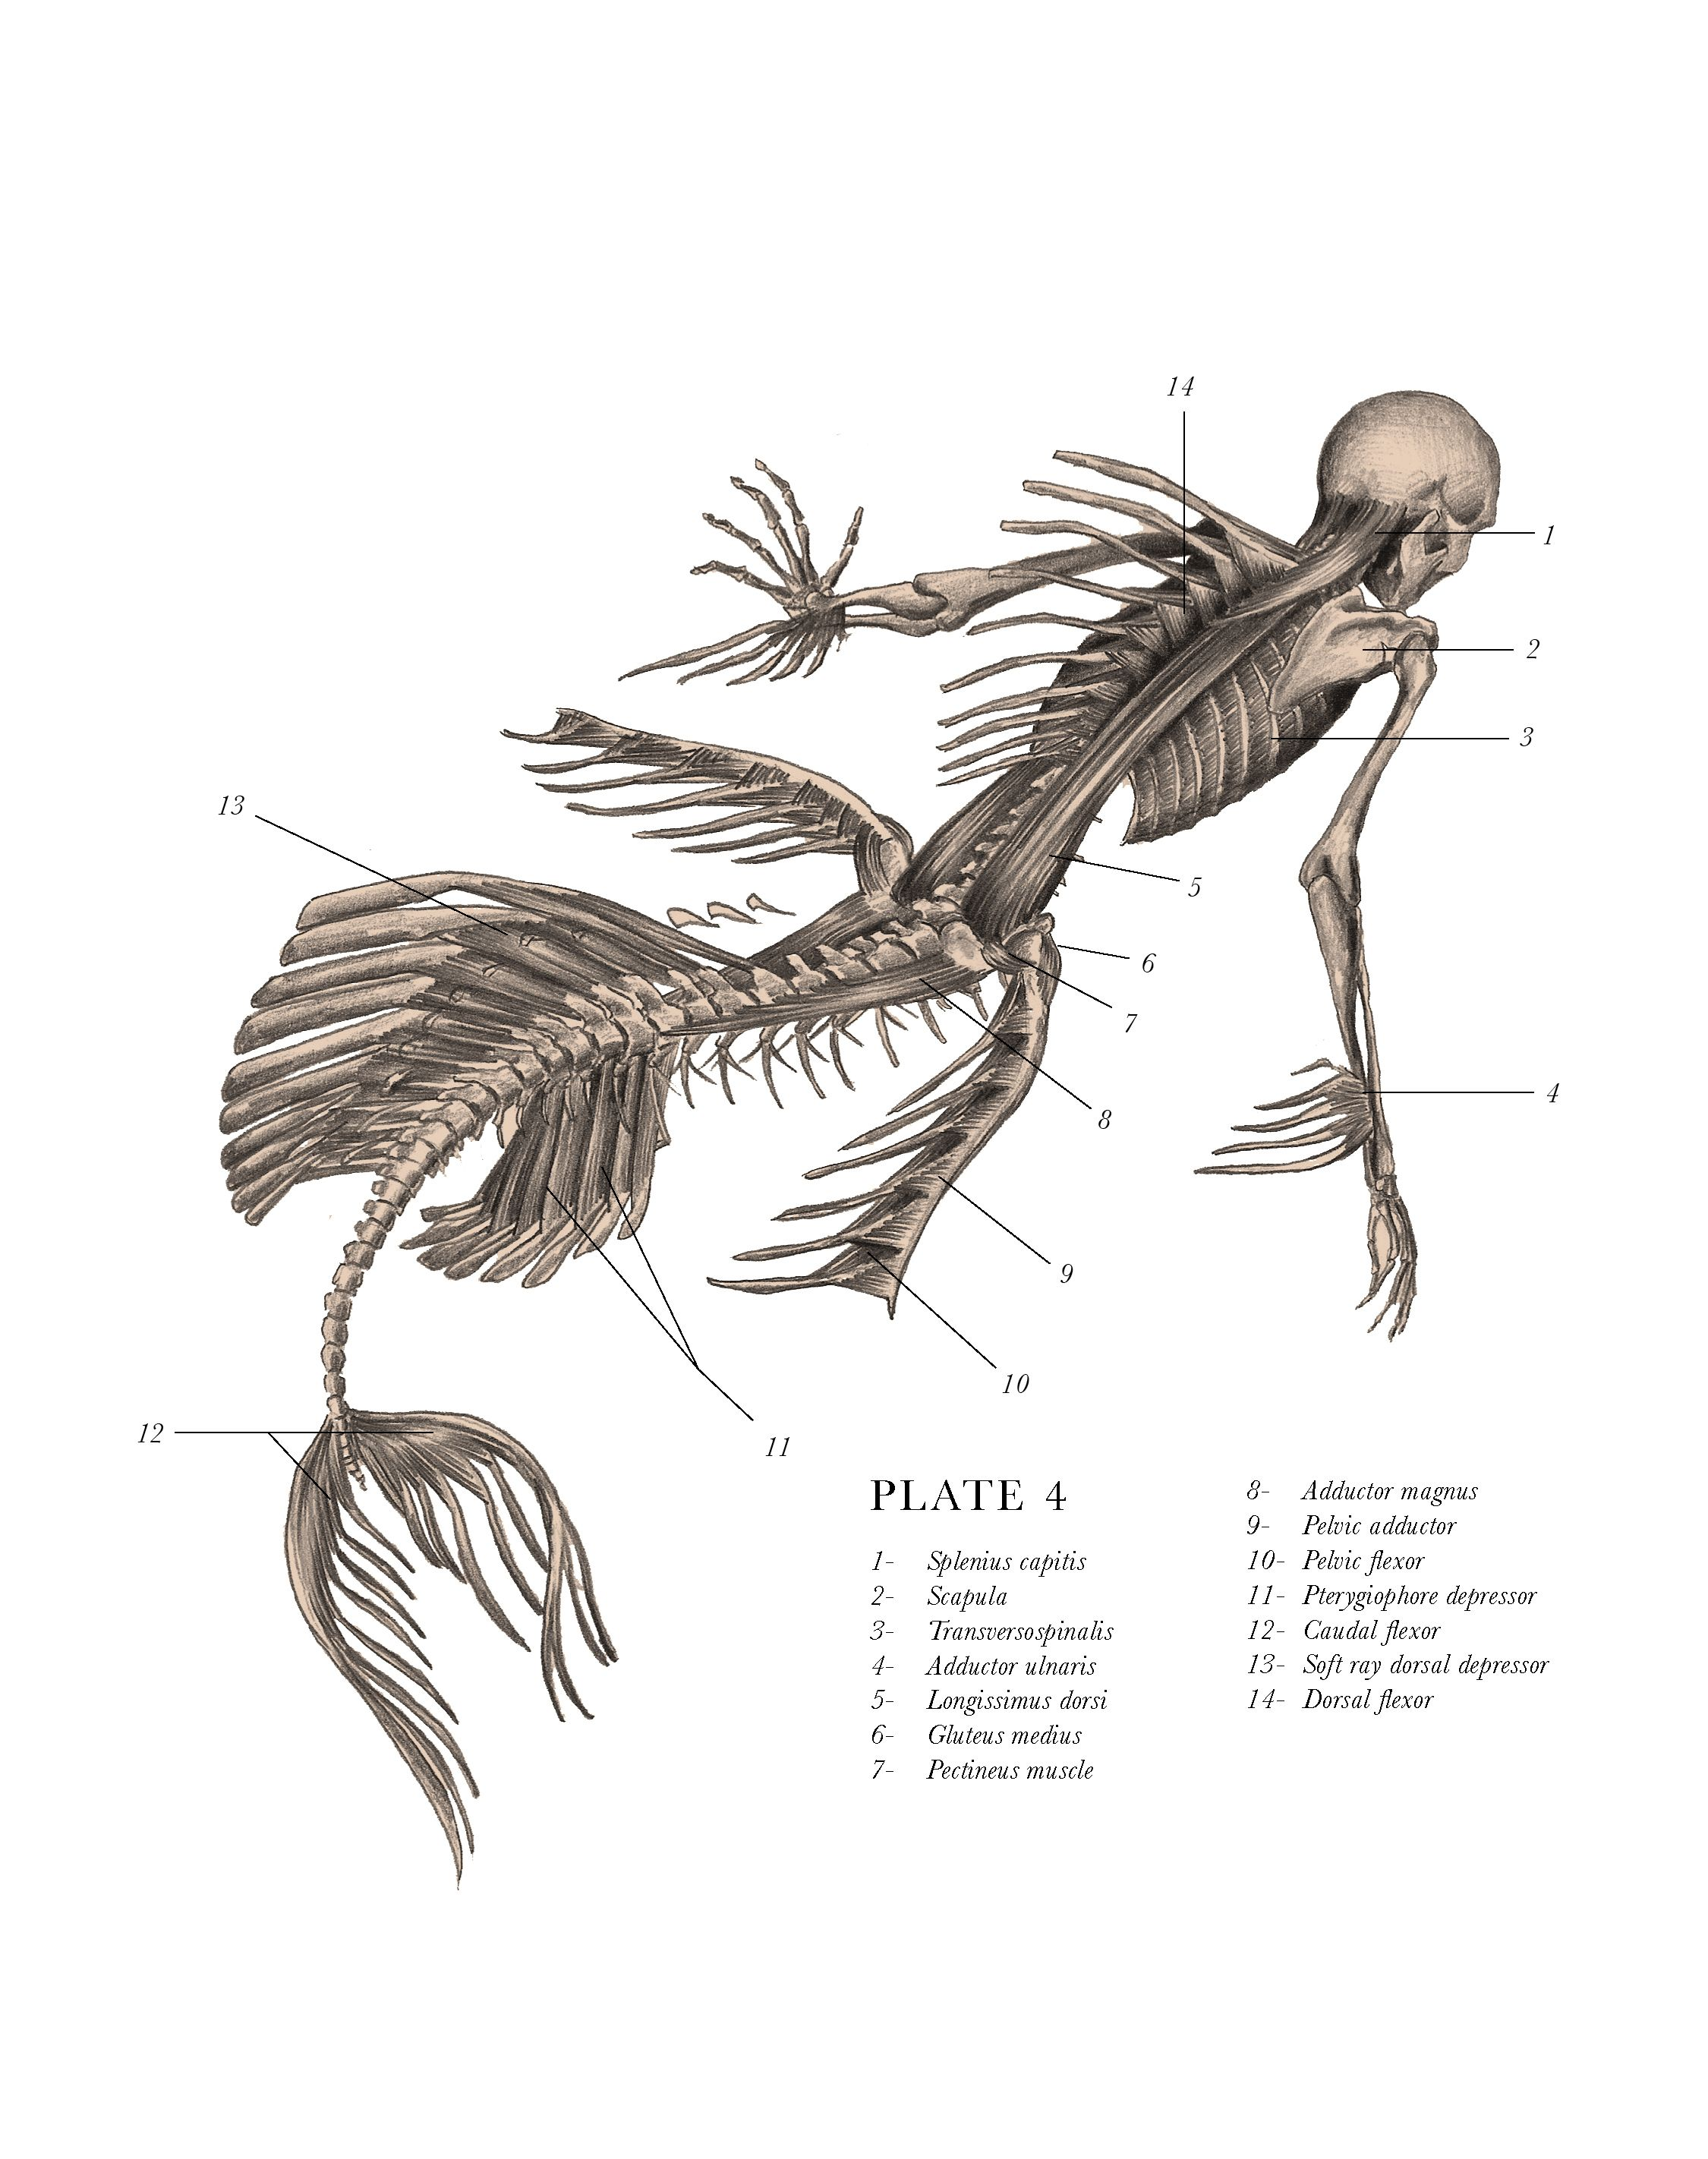 mermaid skeletal system rear view  [ 2250 x 2844 Pixel ]